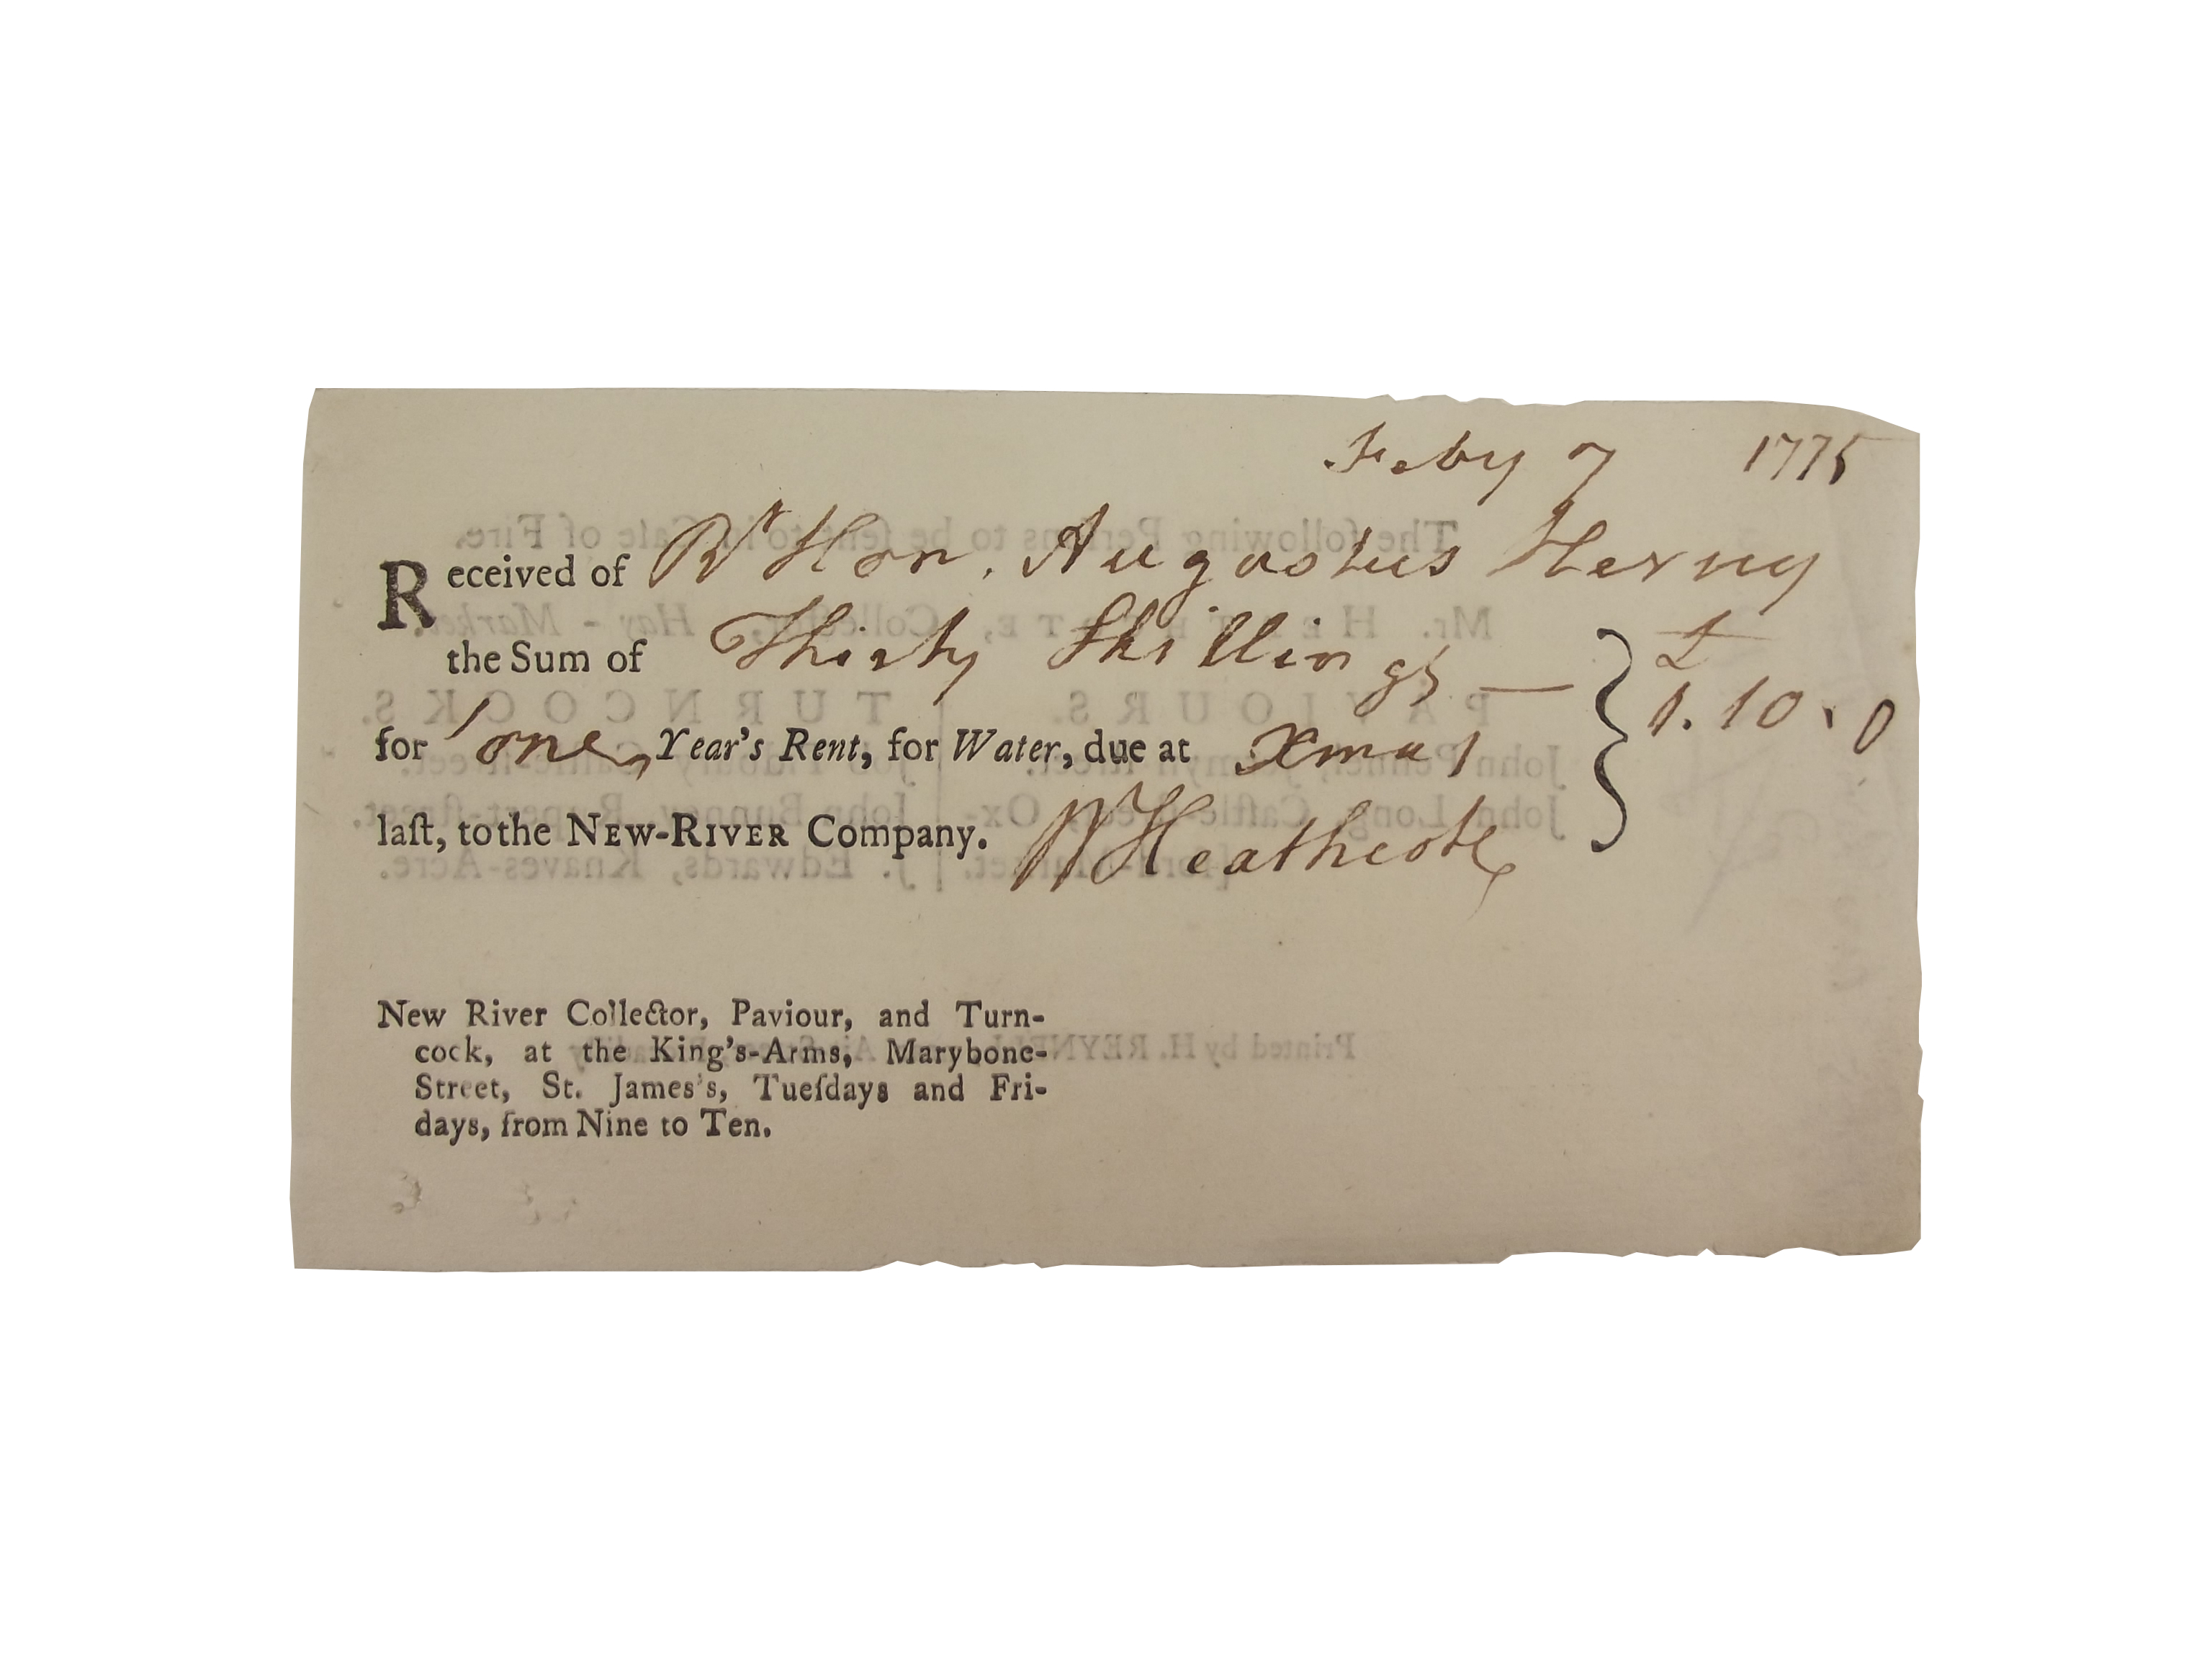 New River Company receipt